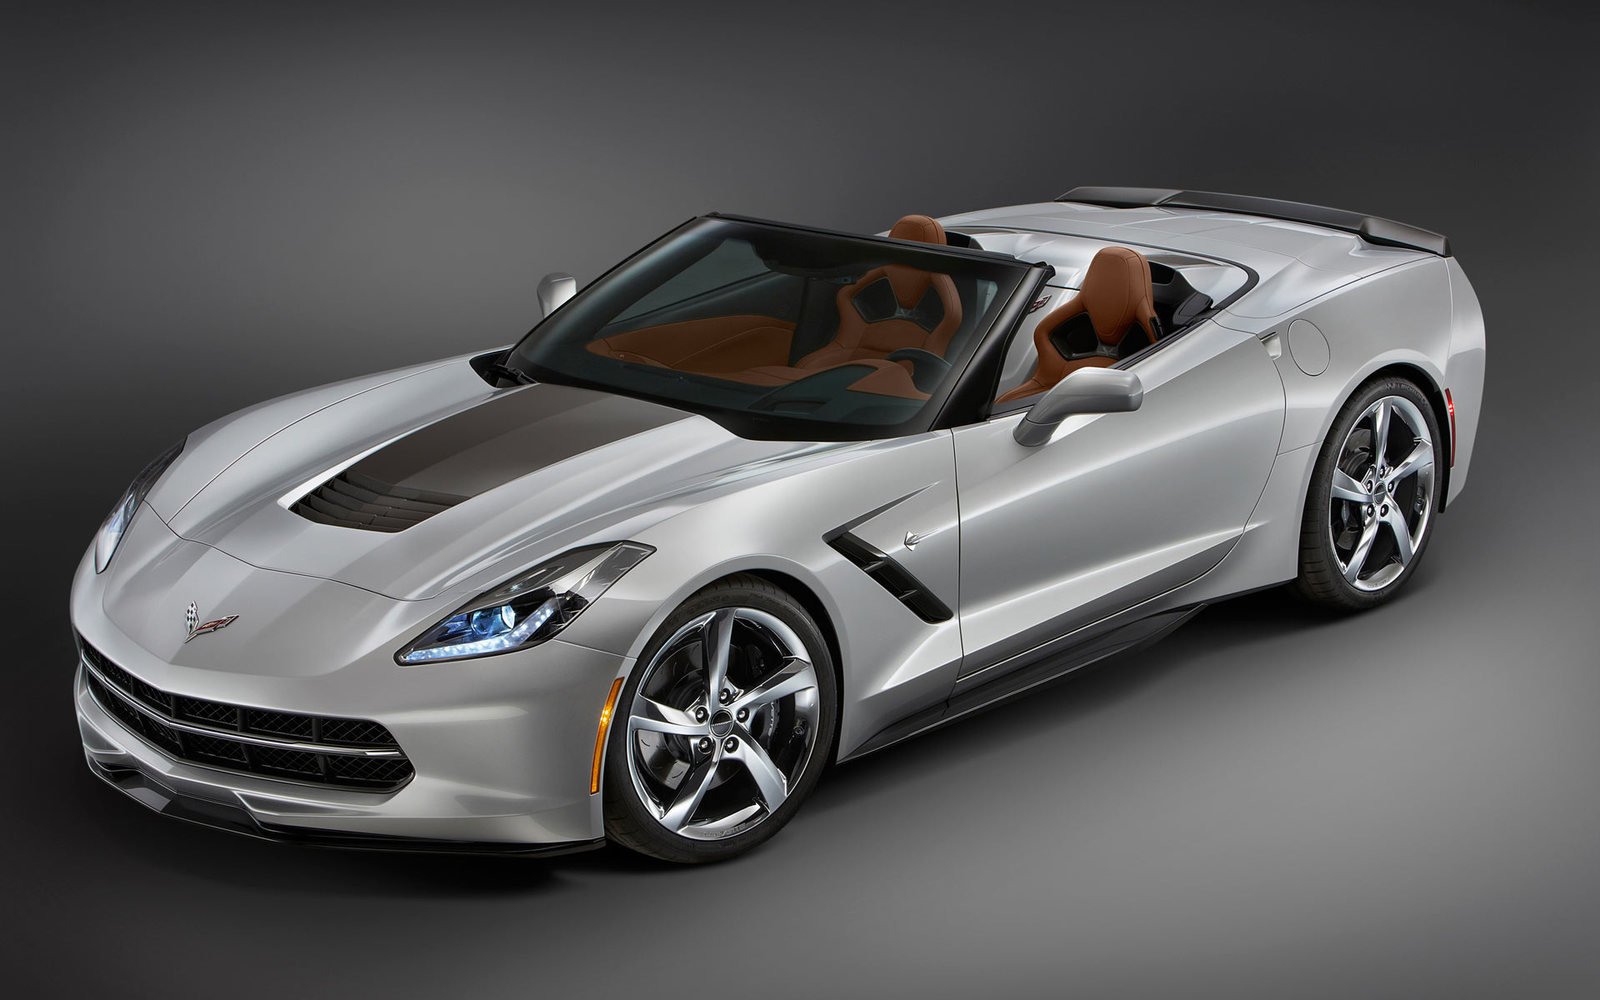 Chevrolet Corvette Stingray Atlantic Concept